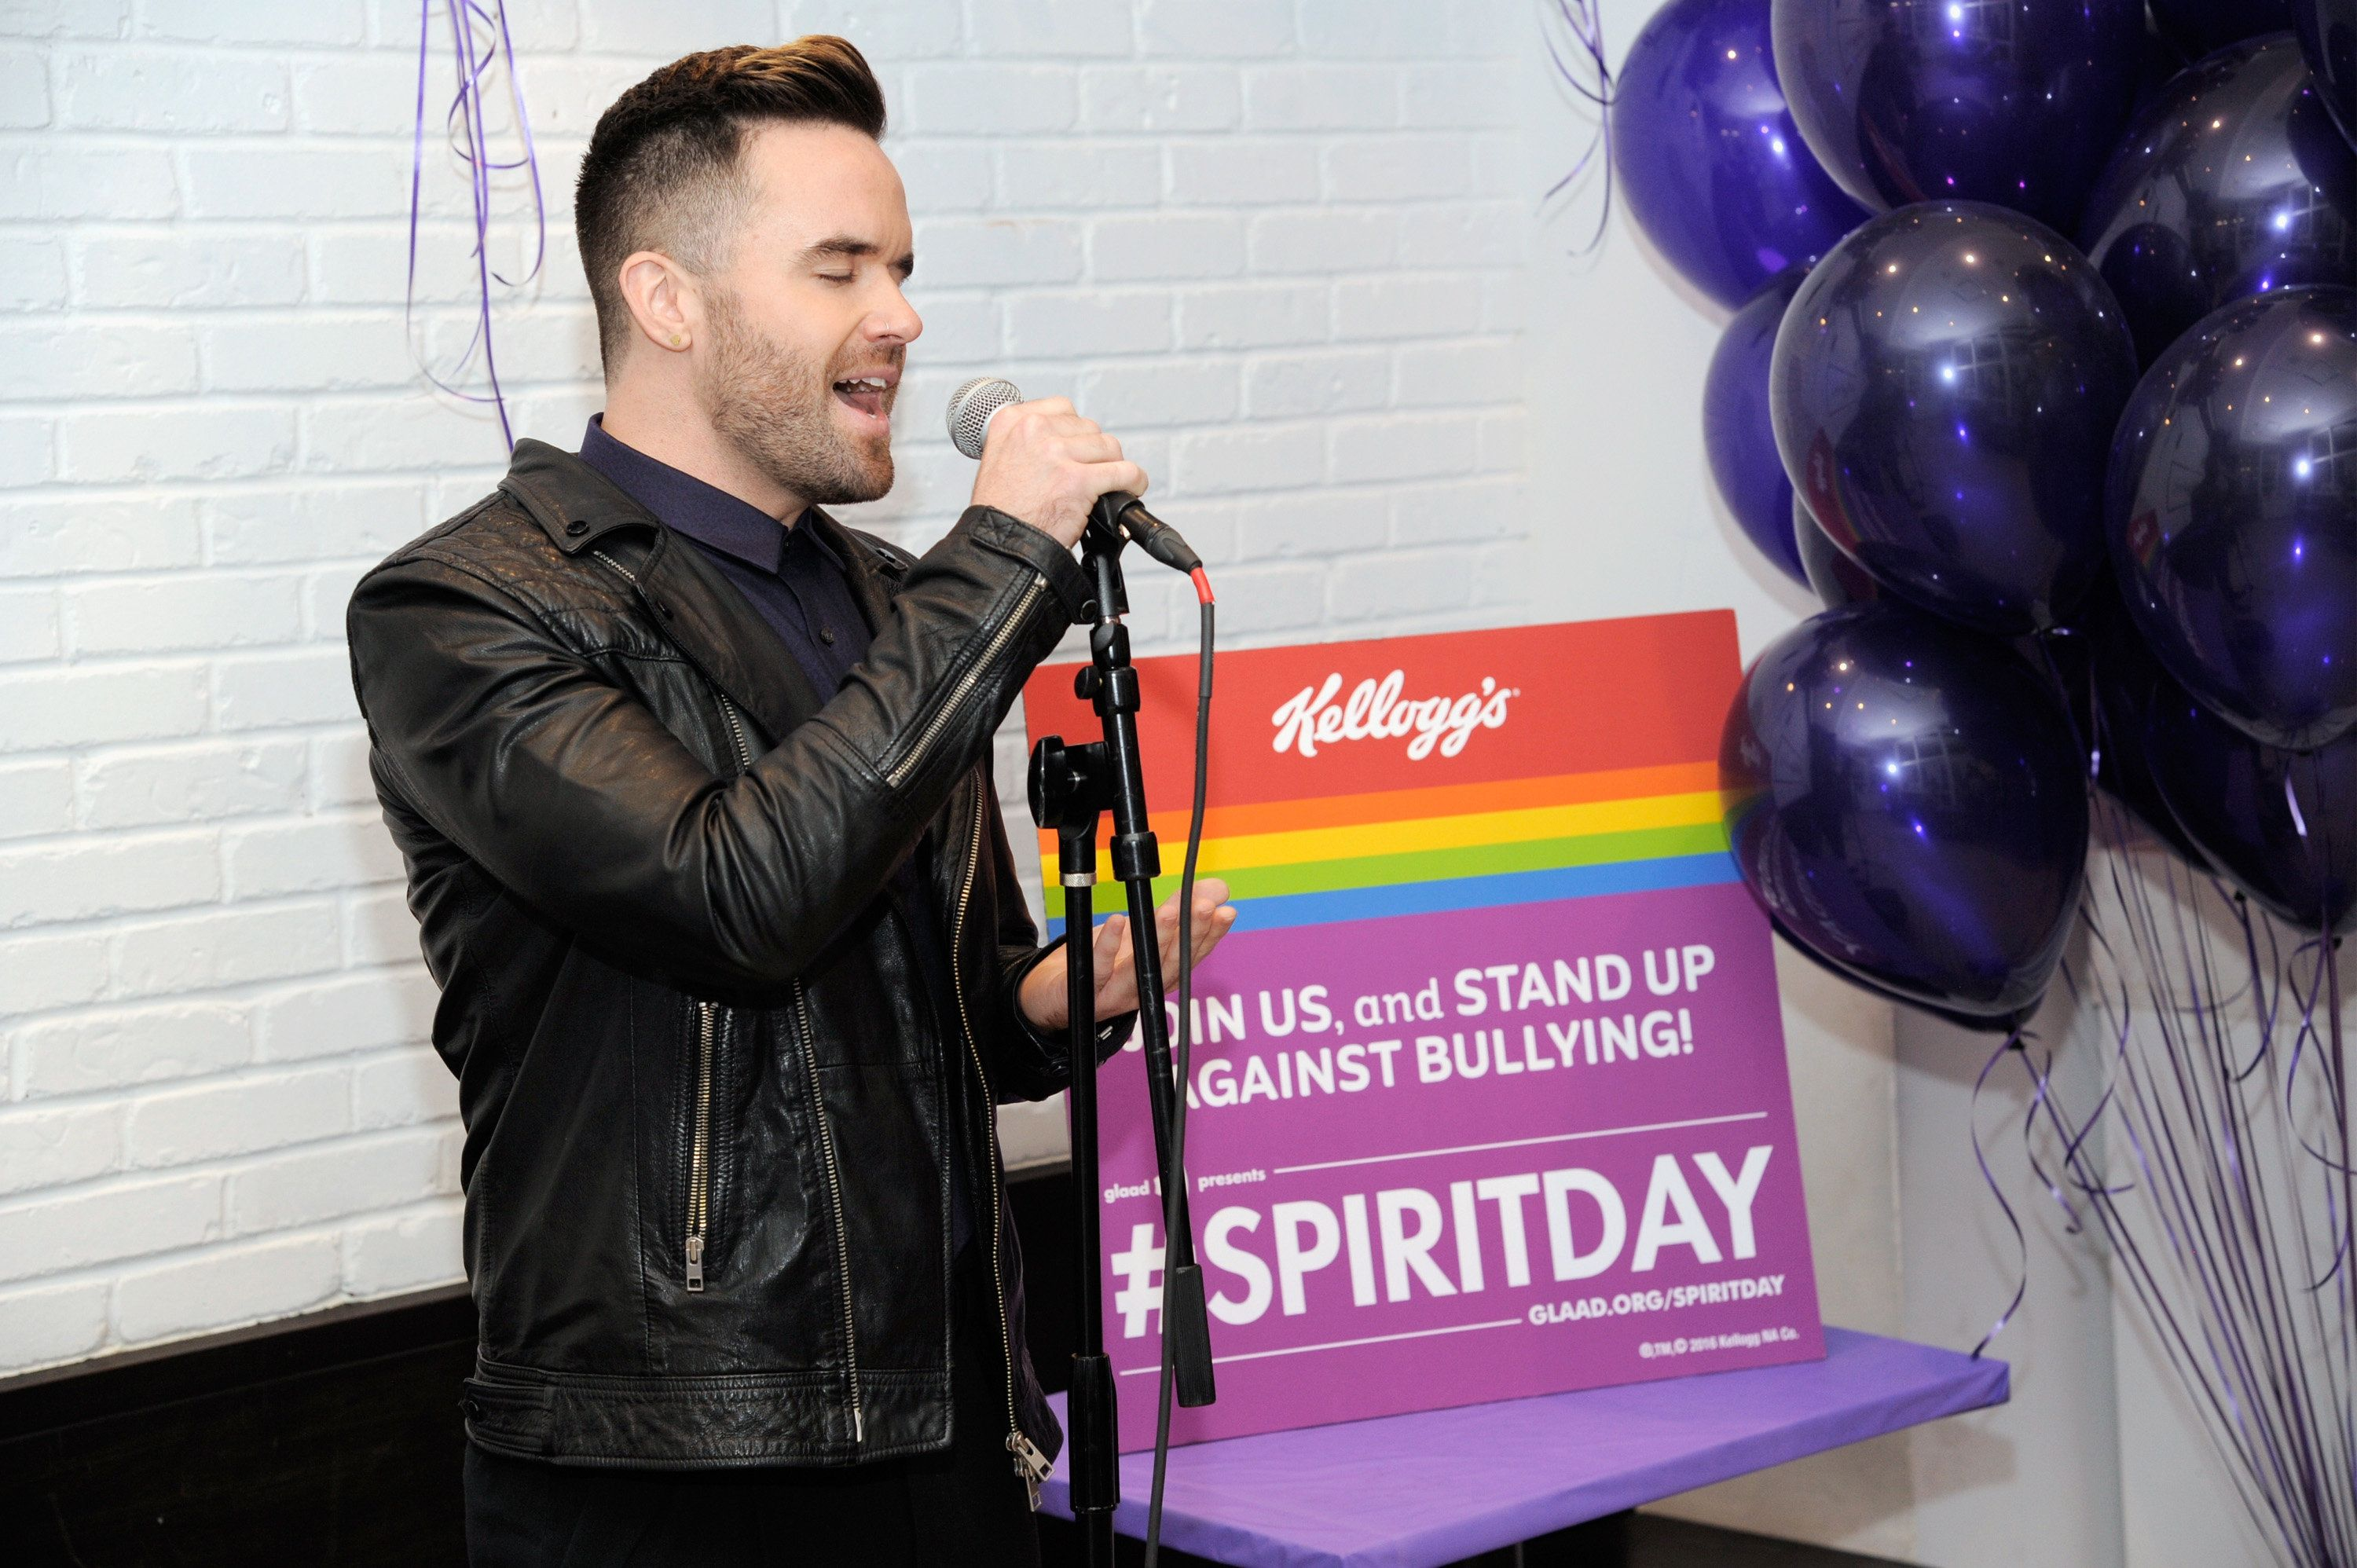 NEW YORK, NY - OCTOBER 20:  Singer Brian Justin Crum performs as Kellogg's celebrates Spirit Day with GLAAD in the Kellogg's NYC Cafe on October 20, 2016 in New York City.  (Photo by Matthew Eisman/Getty Images for Kellogg)